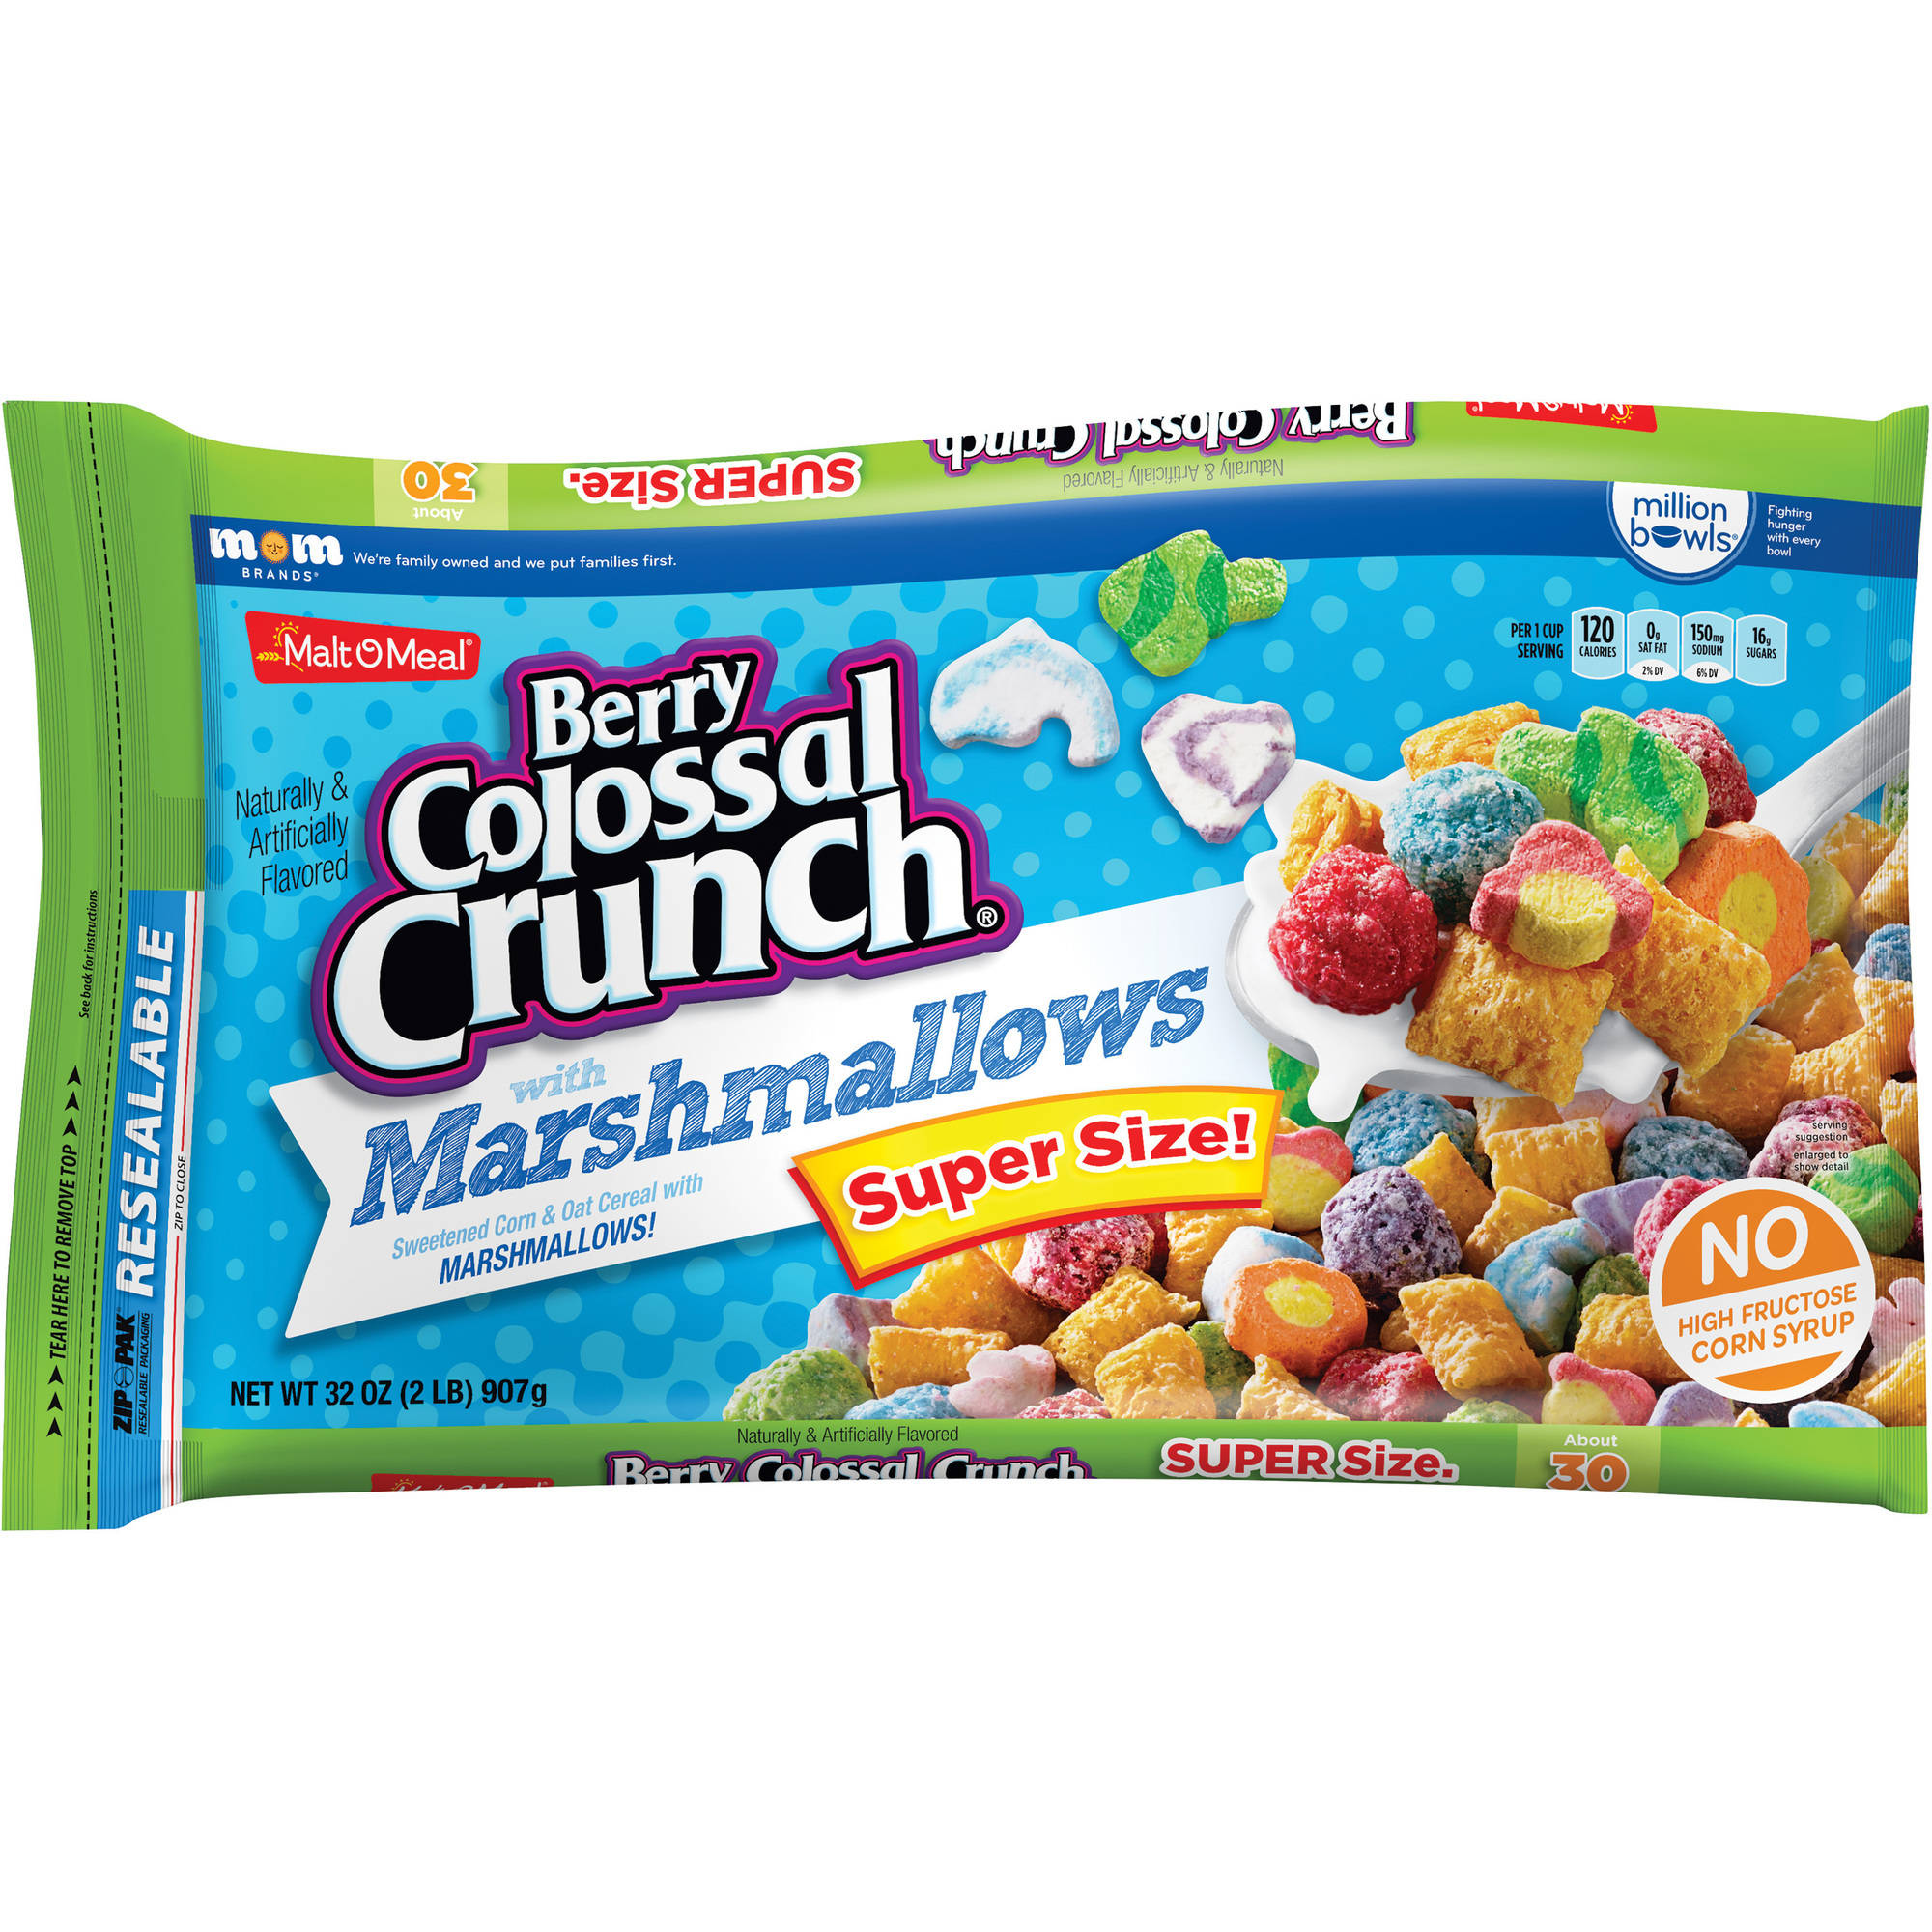 Malt-O-Meal Berry Colossal Crunch with Marshmallows Cereal, 32 oz